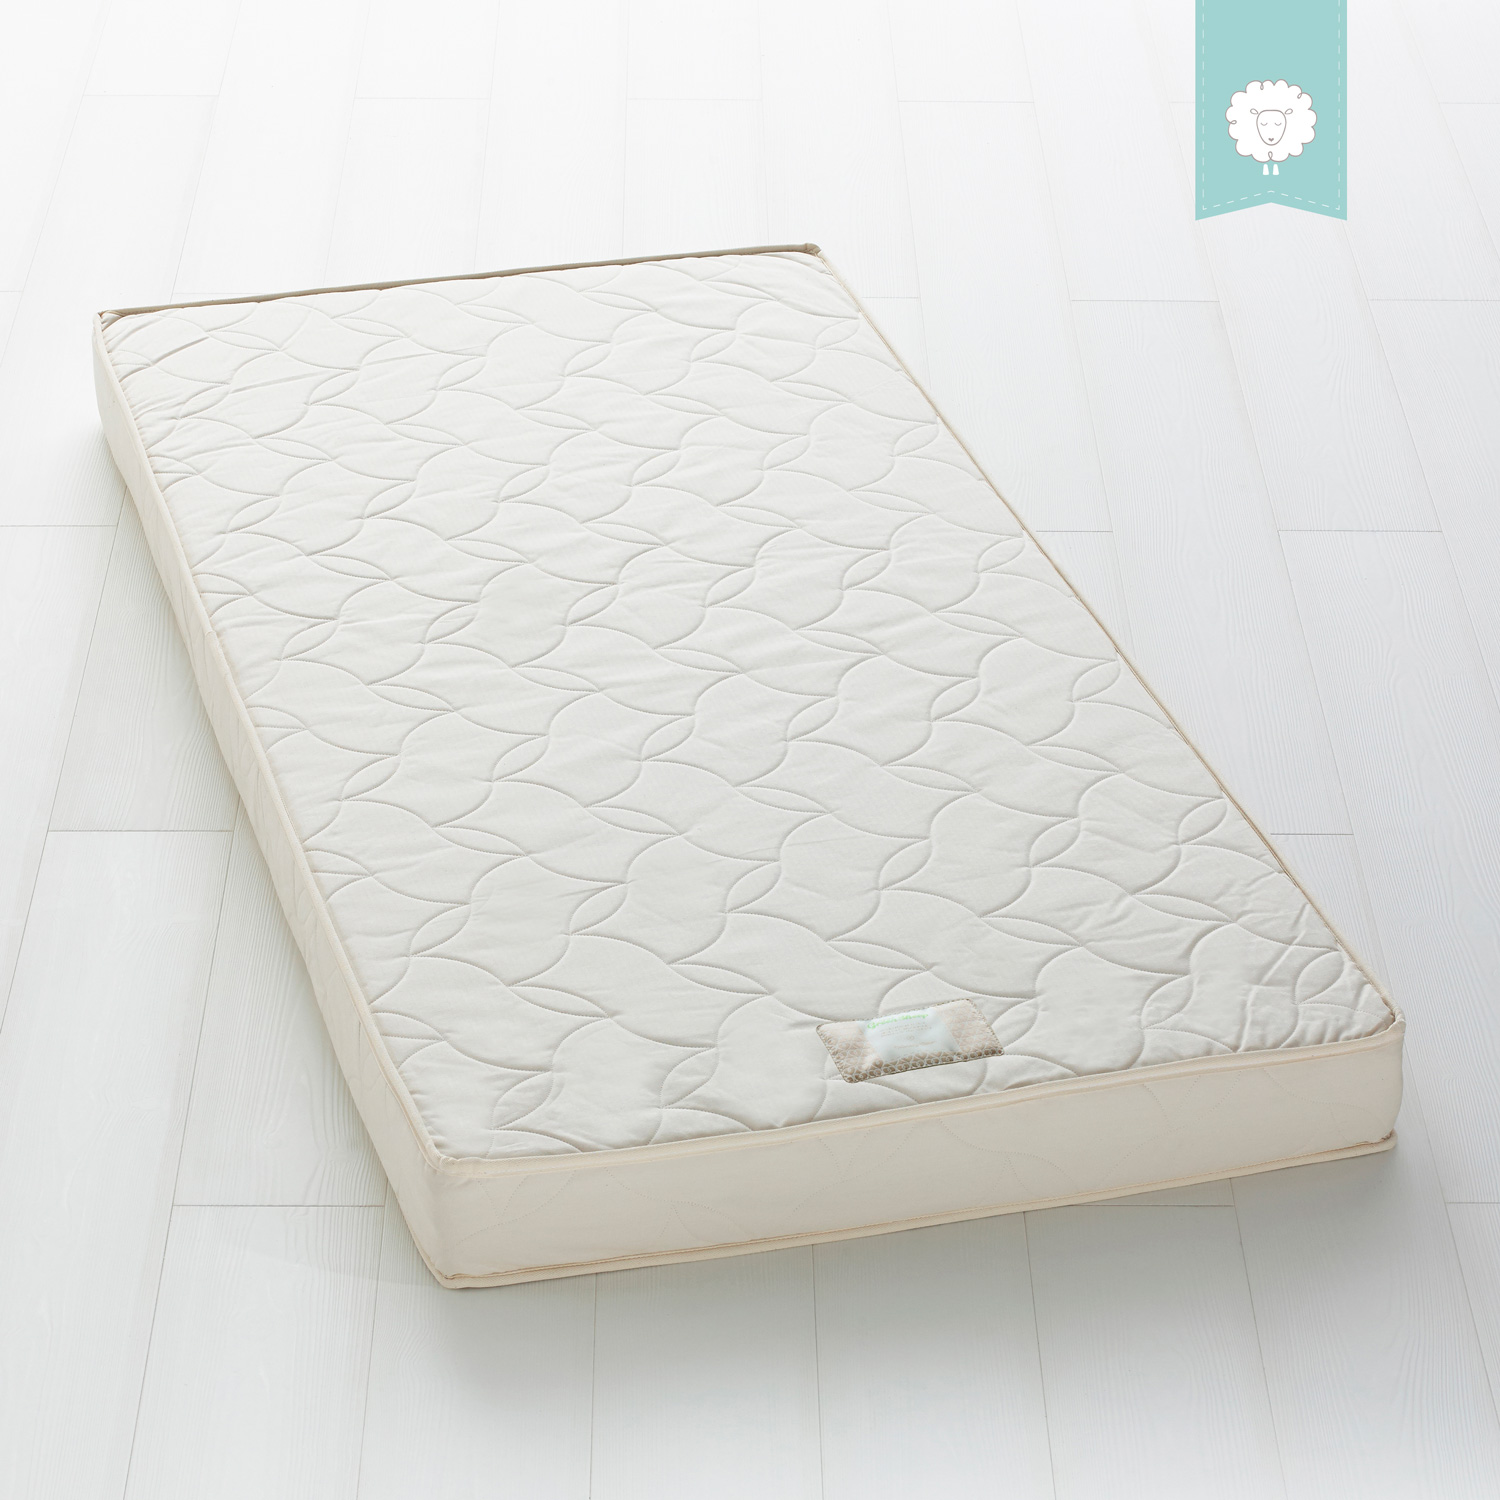 The Little Green Sheep Natural 90x200 Junior Mattress